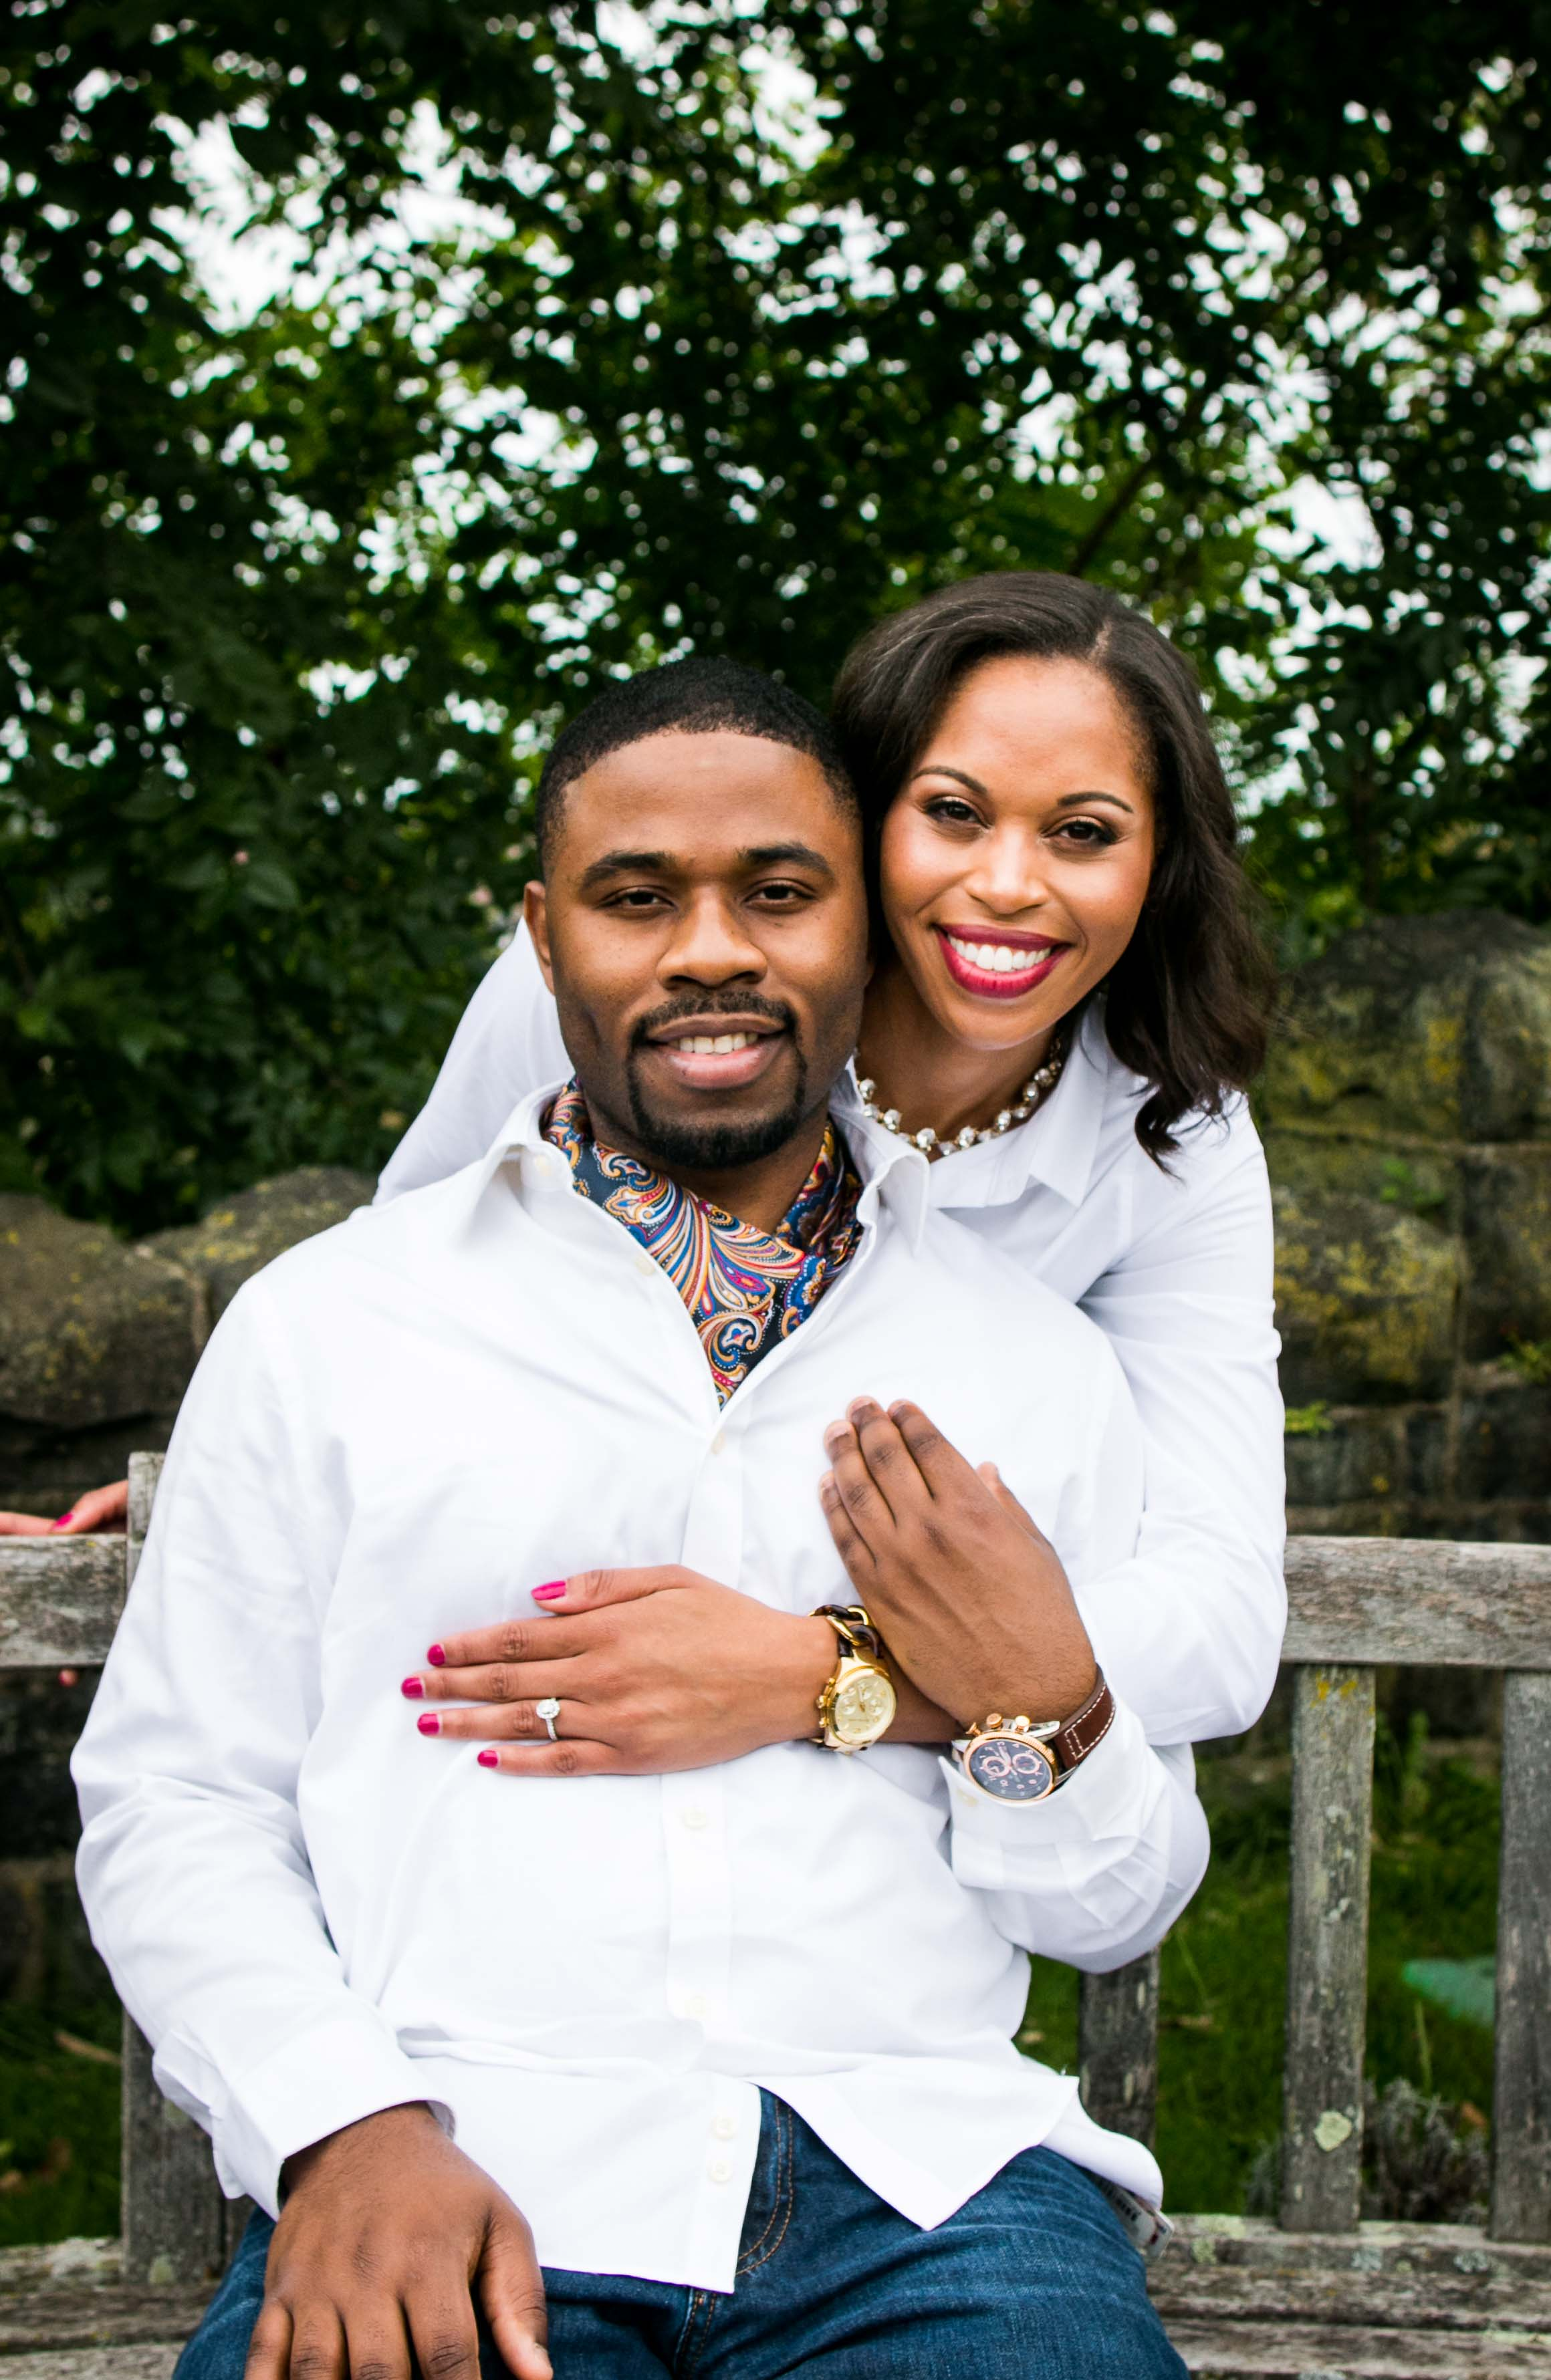 Brittany & Enyinna Engagement_092318_Low Res-152.jpg